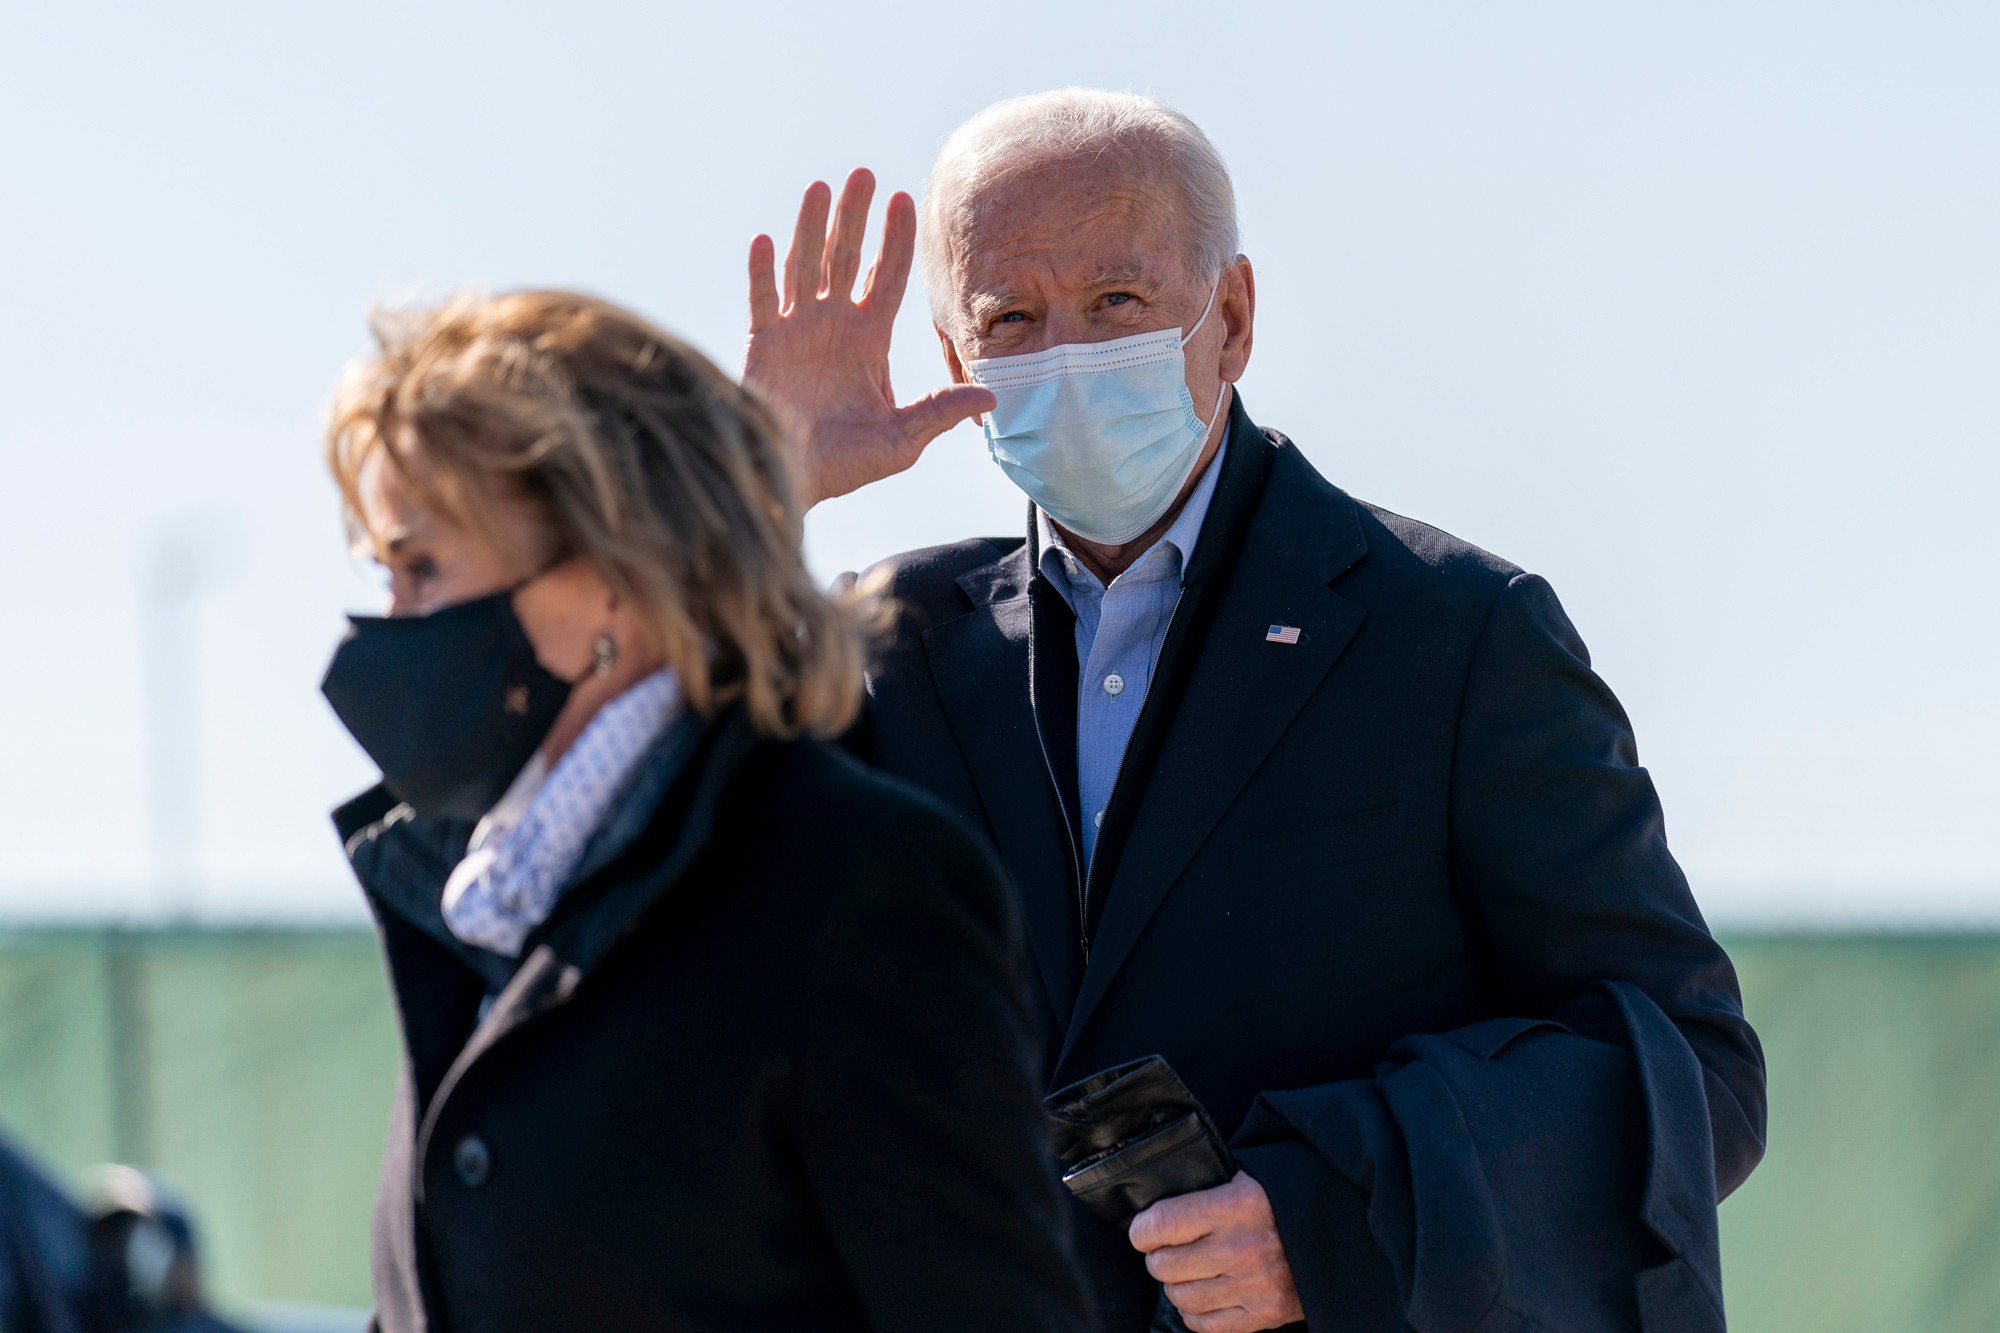 Democratic presidential candidate former Vice President Joe Biden, accompanied by his sister Valerie Biden, arrives at Des Moines International Airport in Des Moines, Iowa, on October 30.